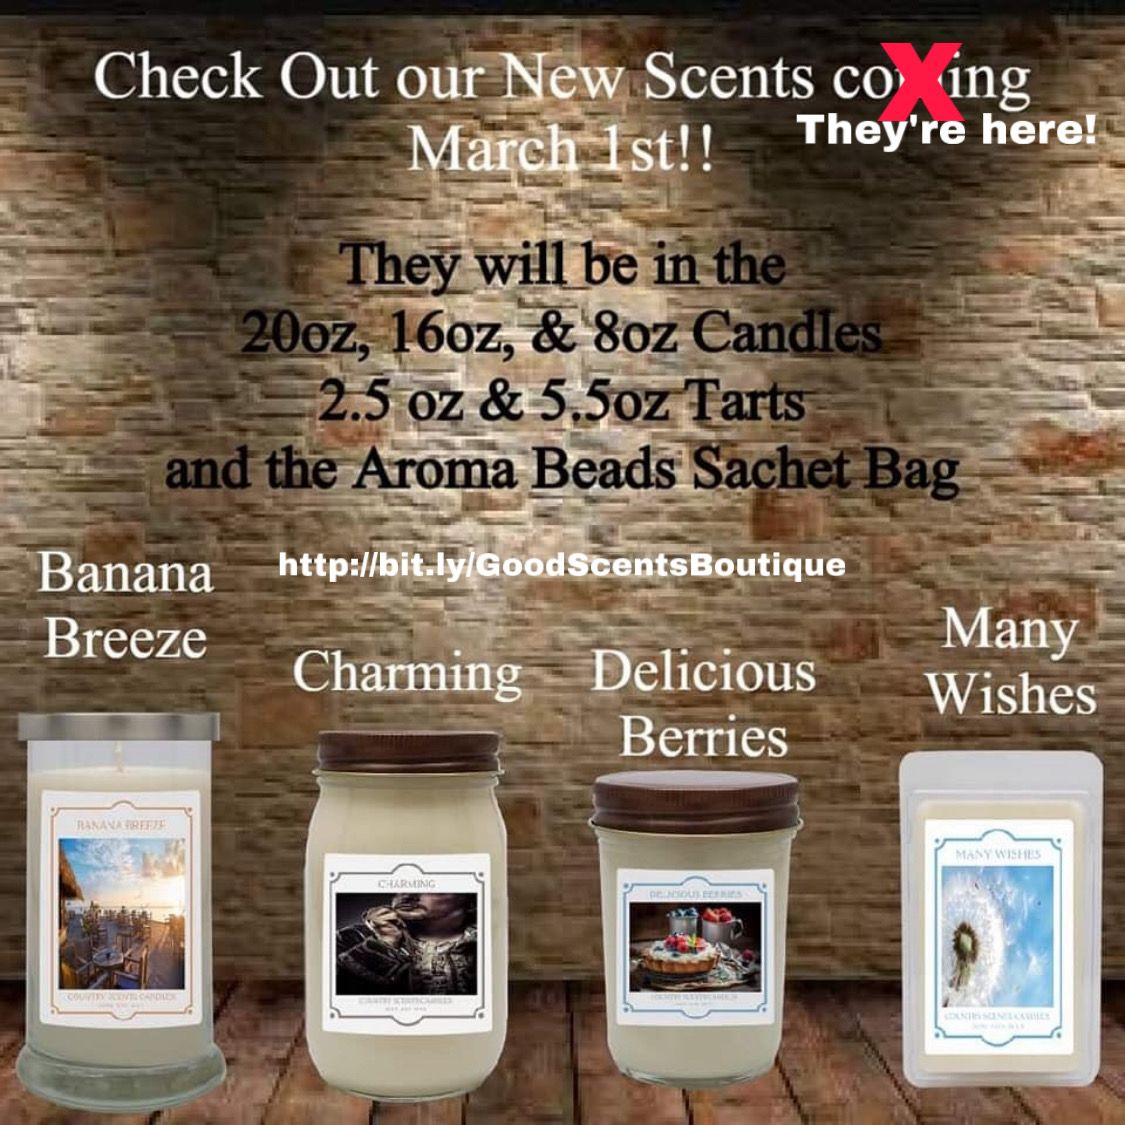 #aromatherapy #candles #waxtarts #countrycubbies #countrykinz #newscents #giftideas